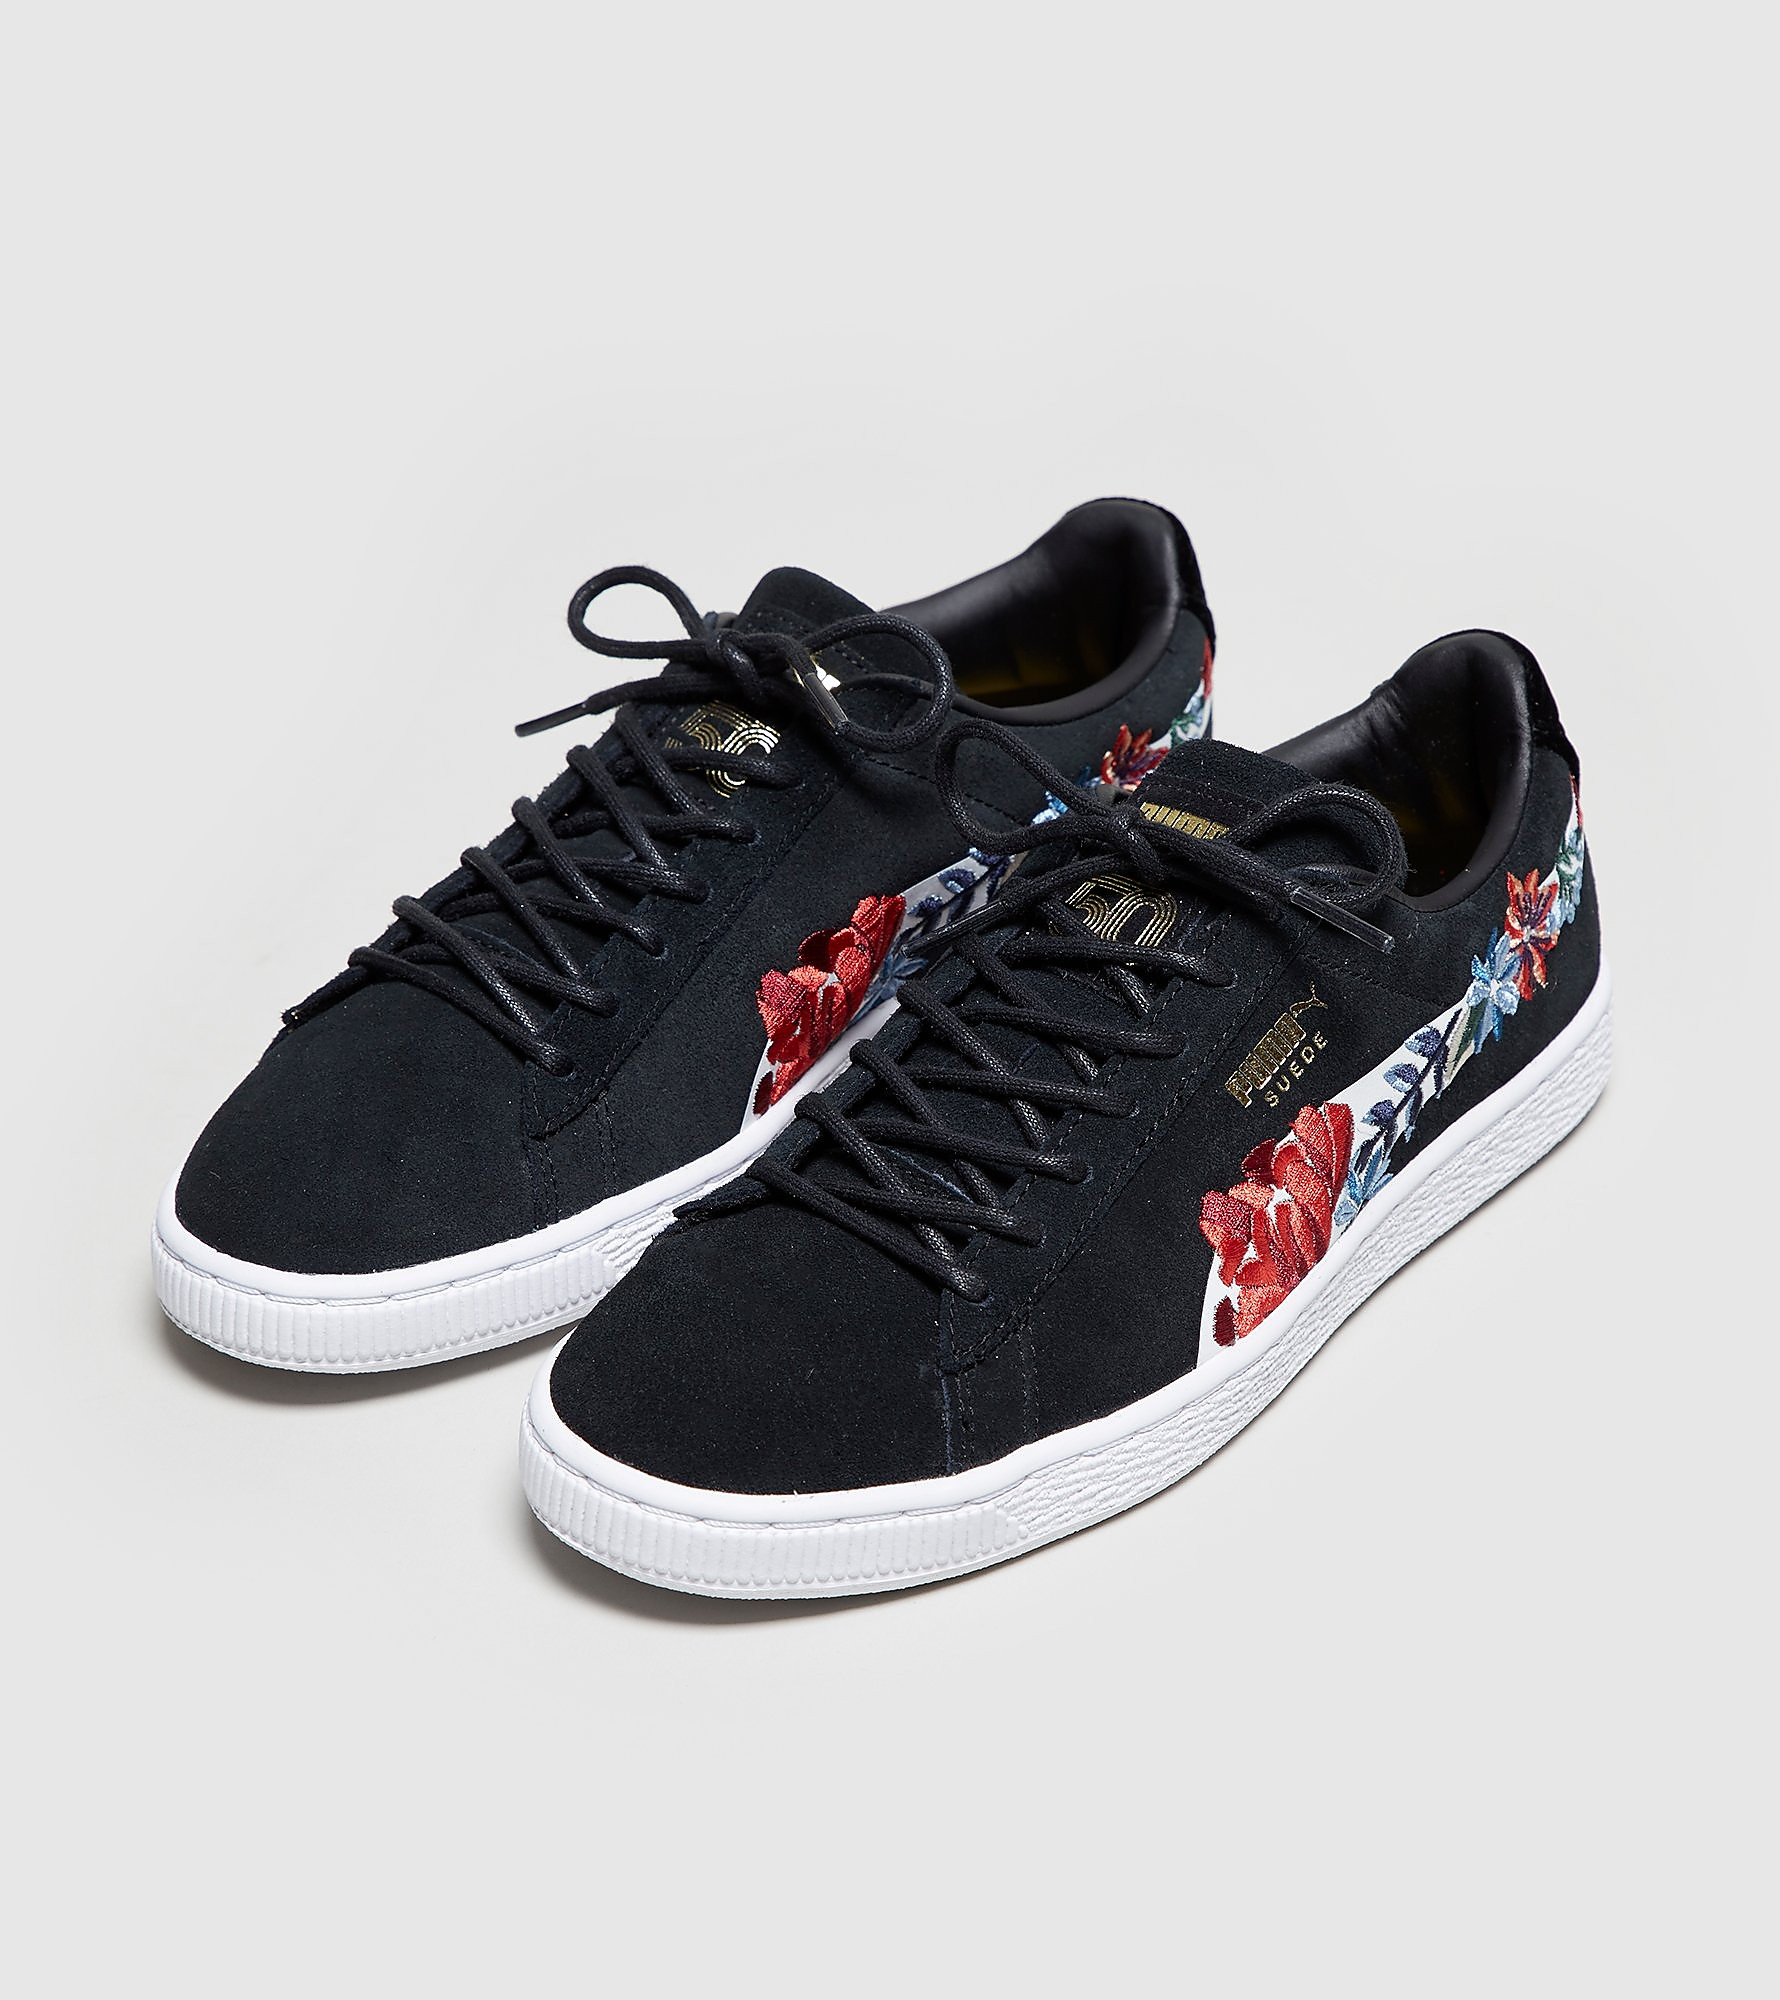 PUMA Suede Embellished Women's